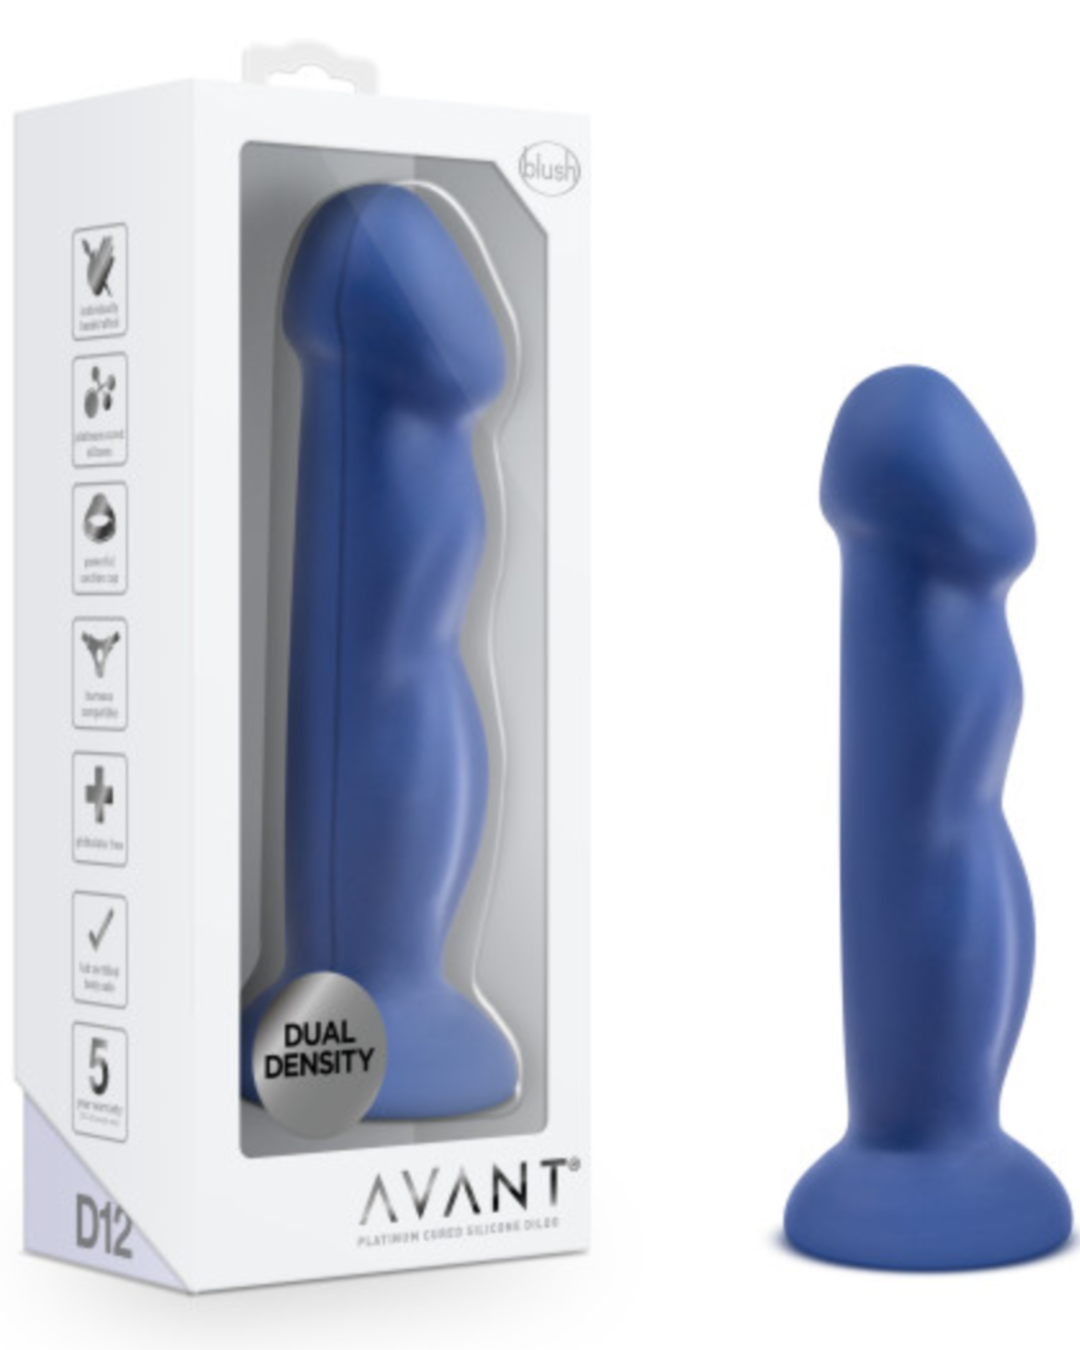 Avant D12 Suko  8 Inch Dildo by Blush Novelties - Indigo toy and box